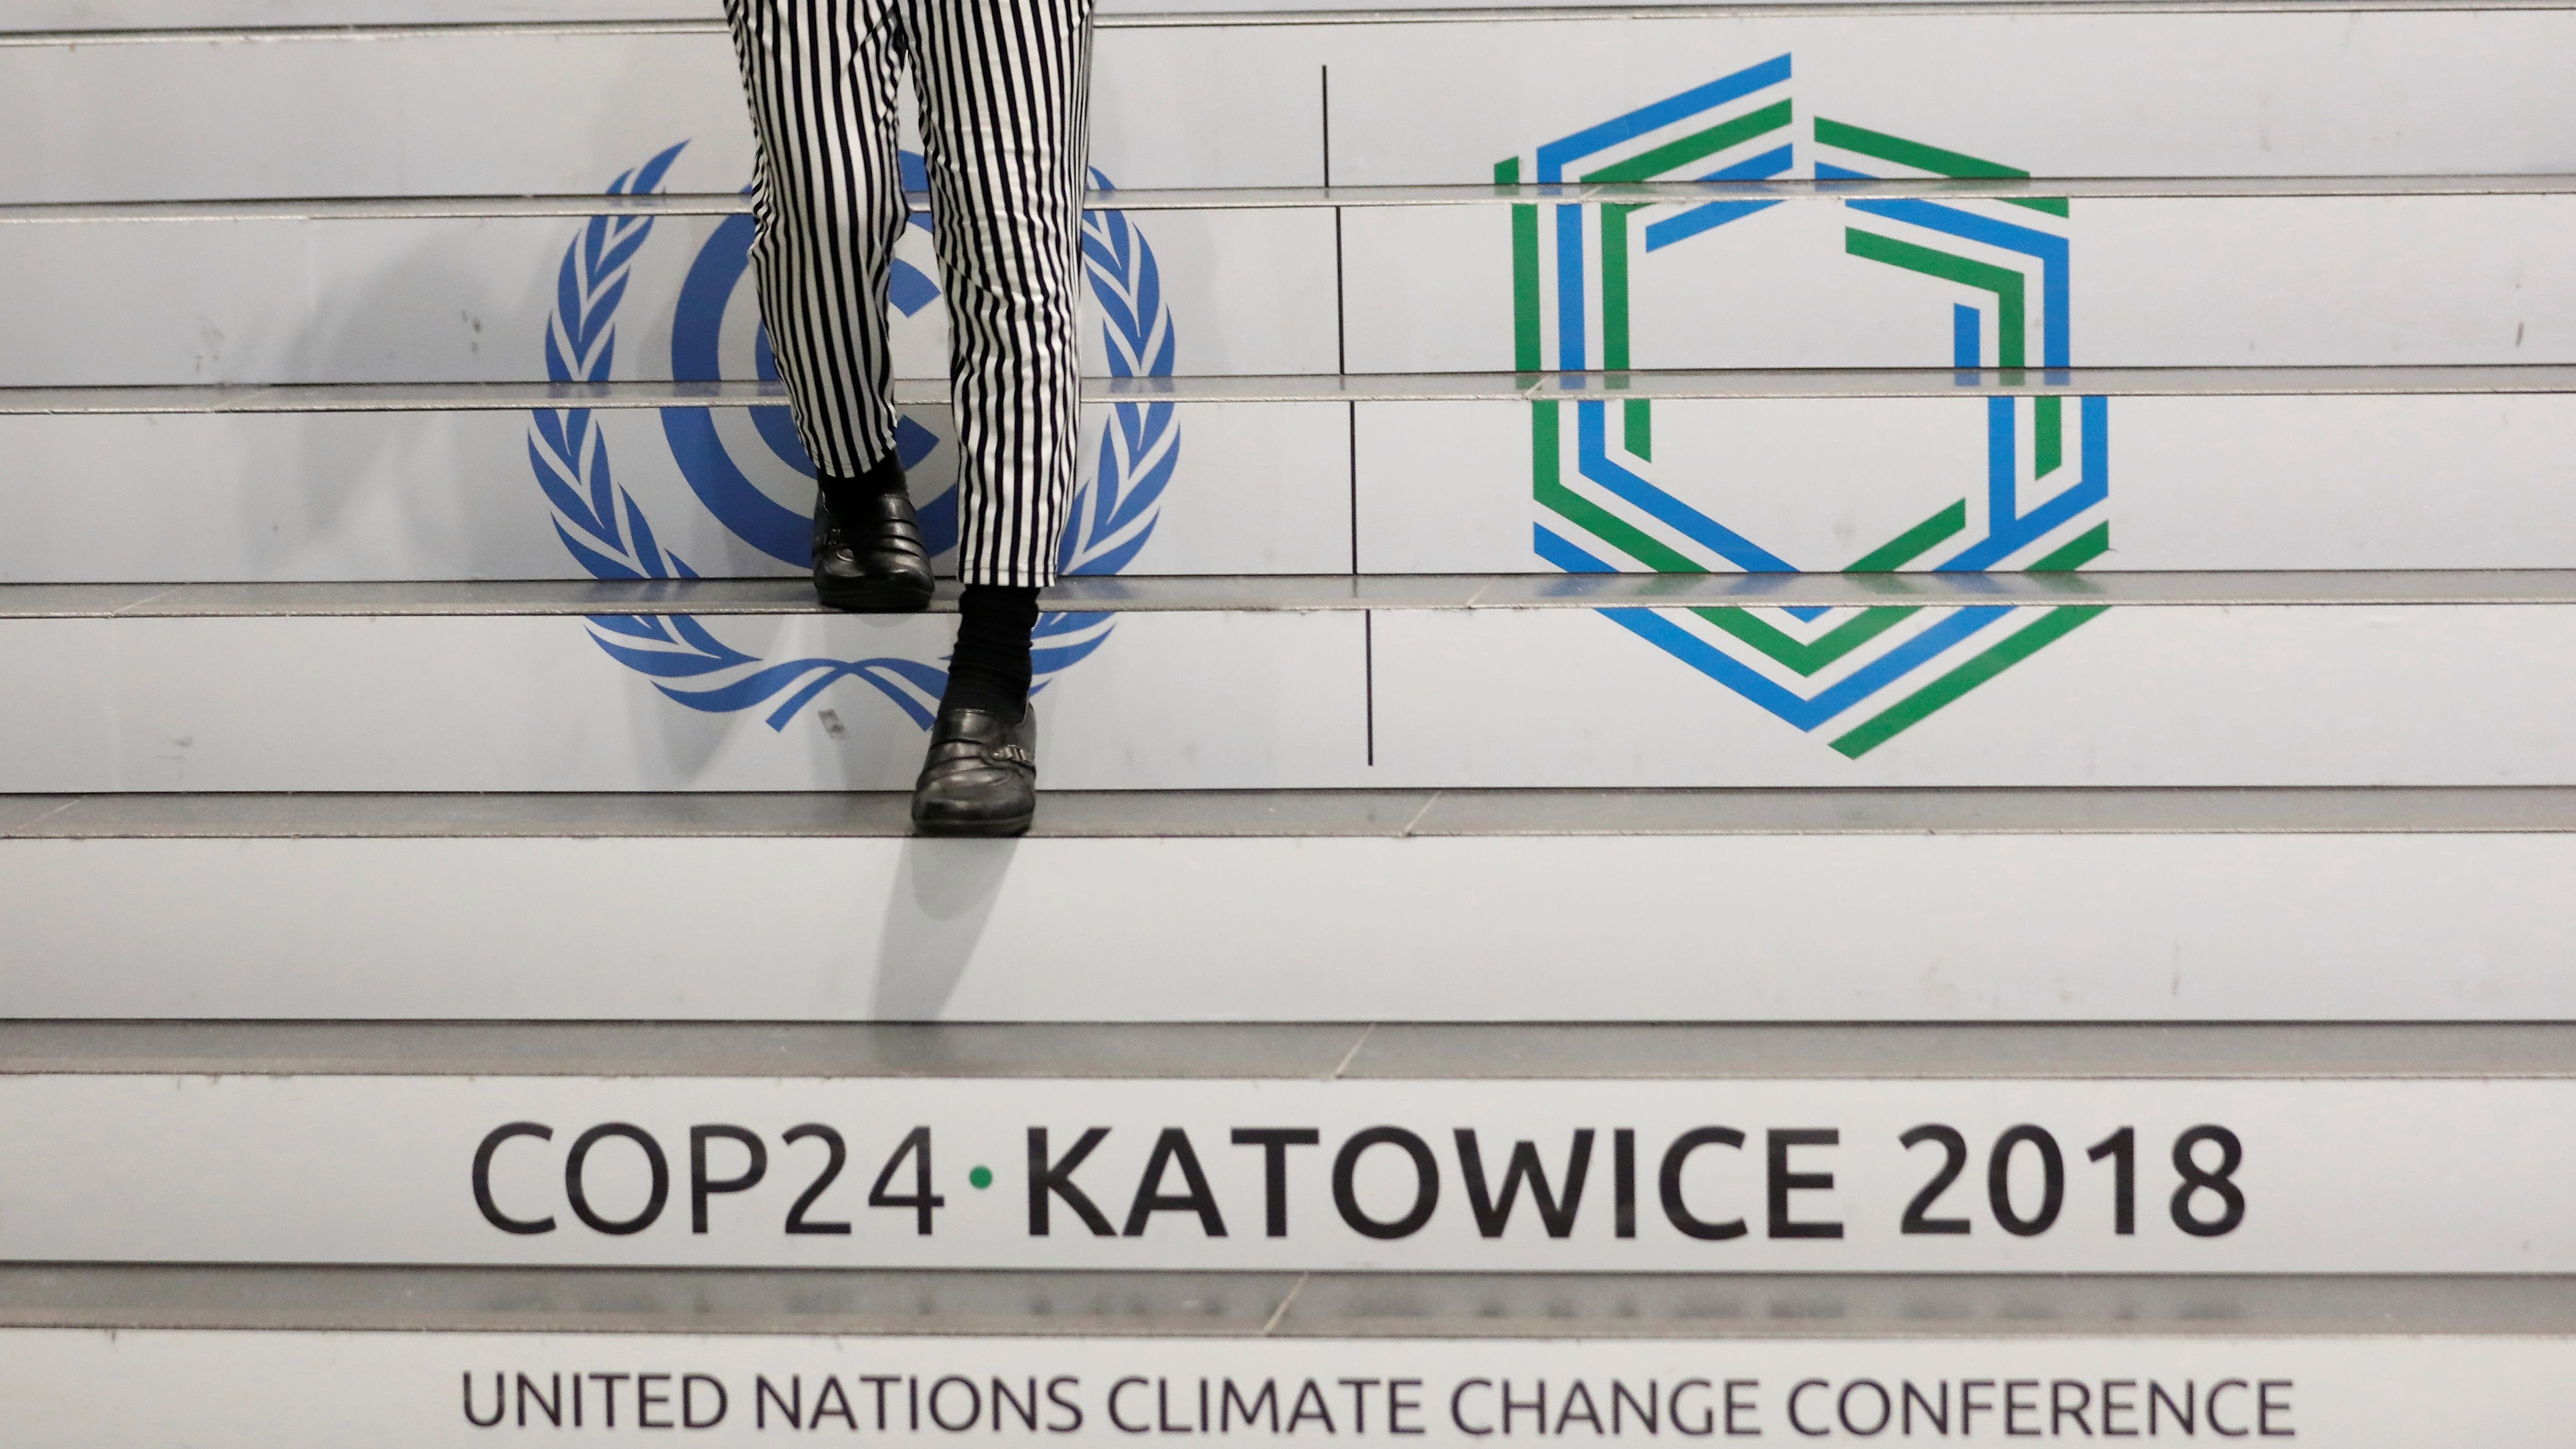 A woman walks down the stairs inside the venue of the COP24 U.N. Climate Change Conference 2018 in Katowice, Poland December 4, 2018. REUTERS/Kacper Pempel - RC17C9119580